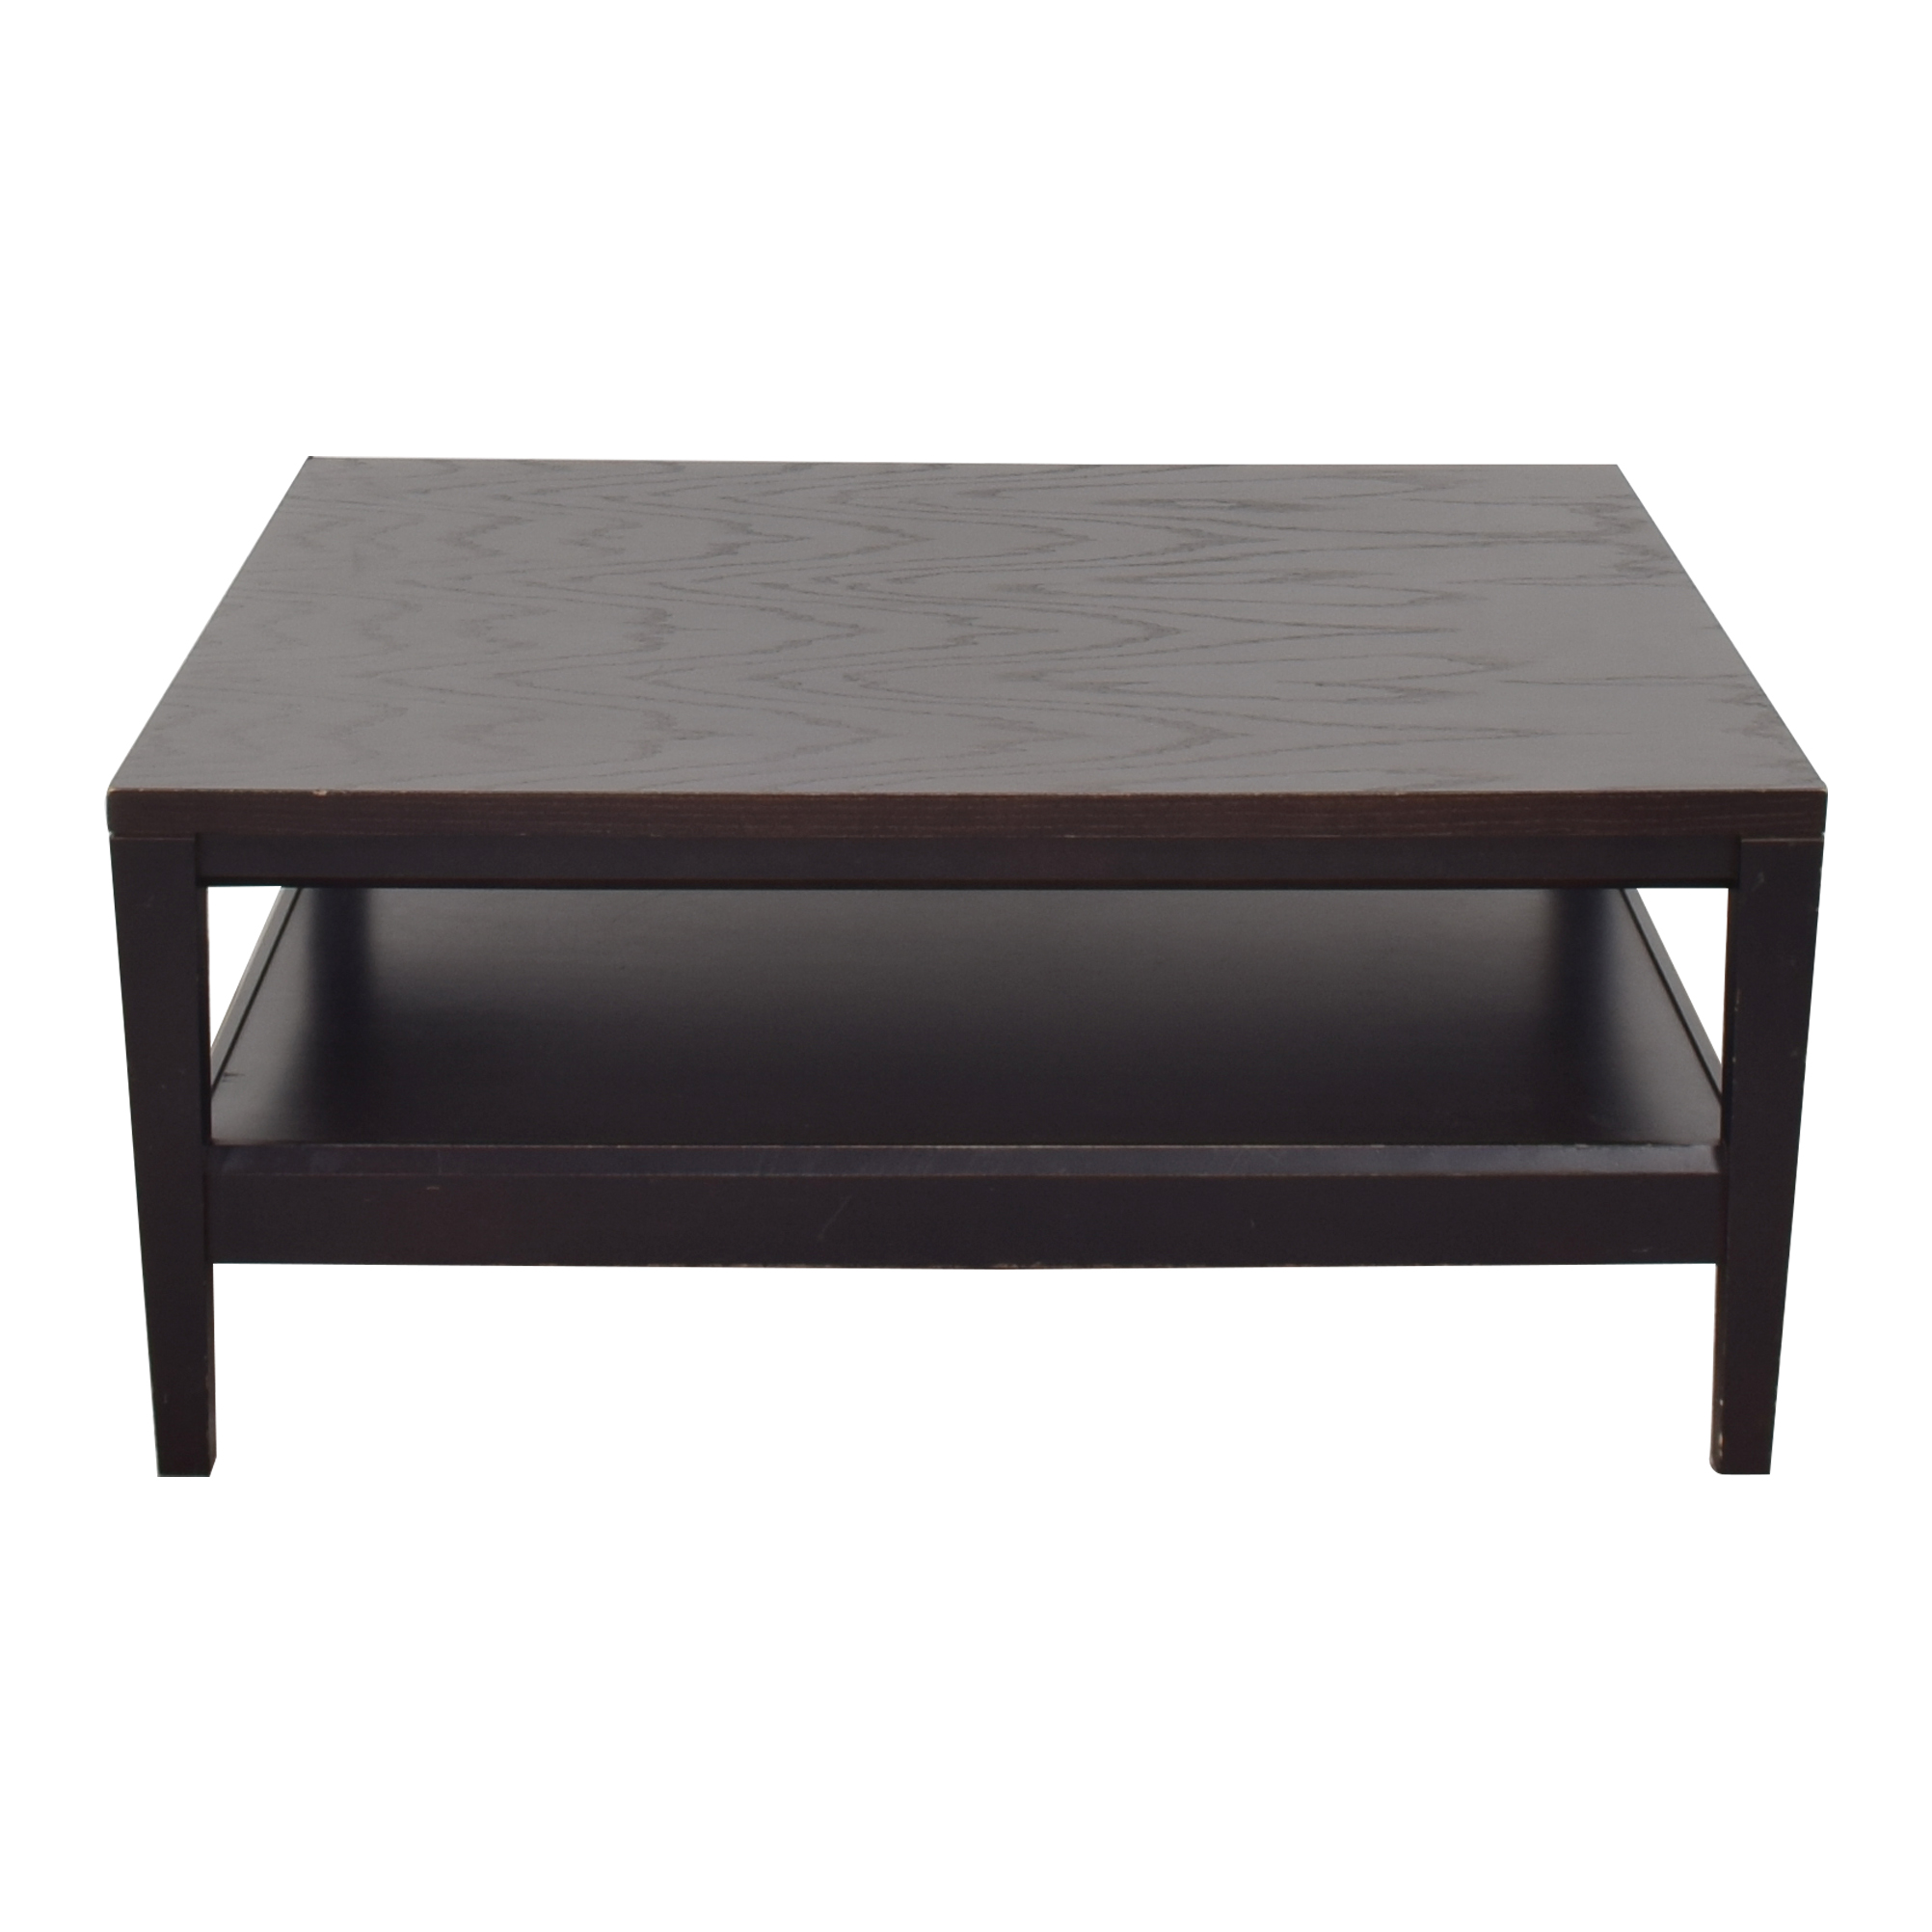 Baronet Baronet Coffee Table pa